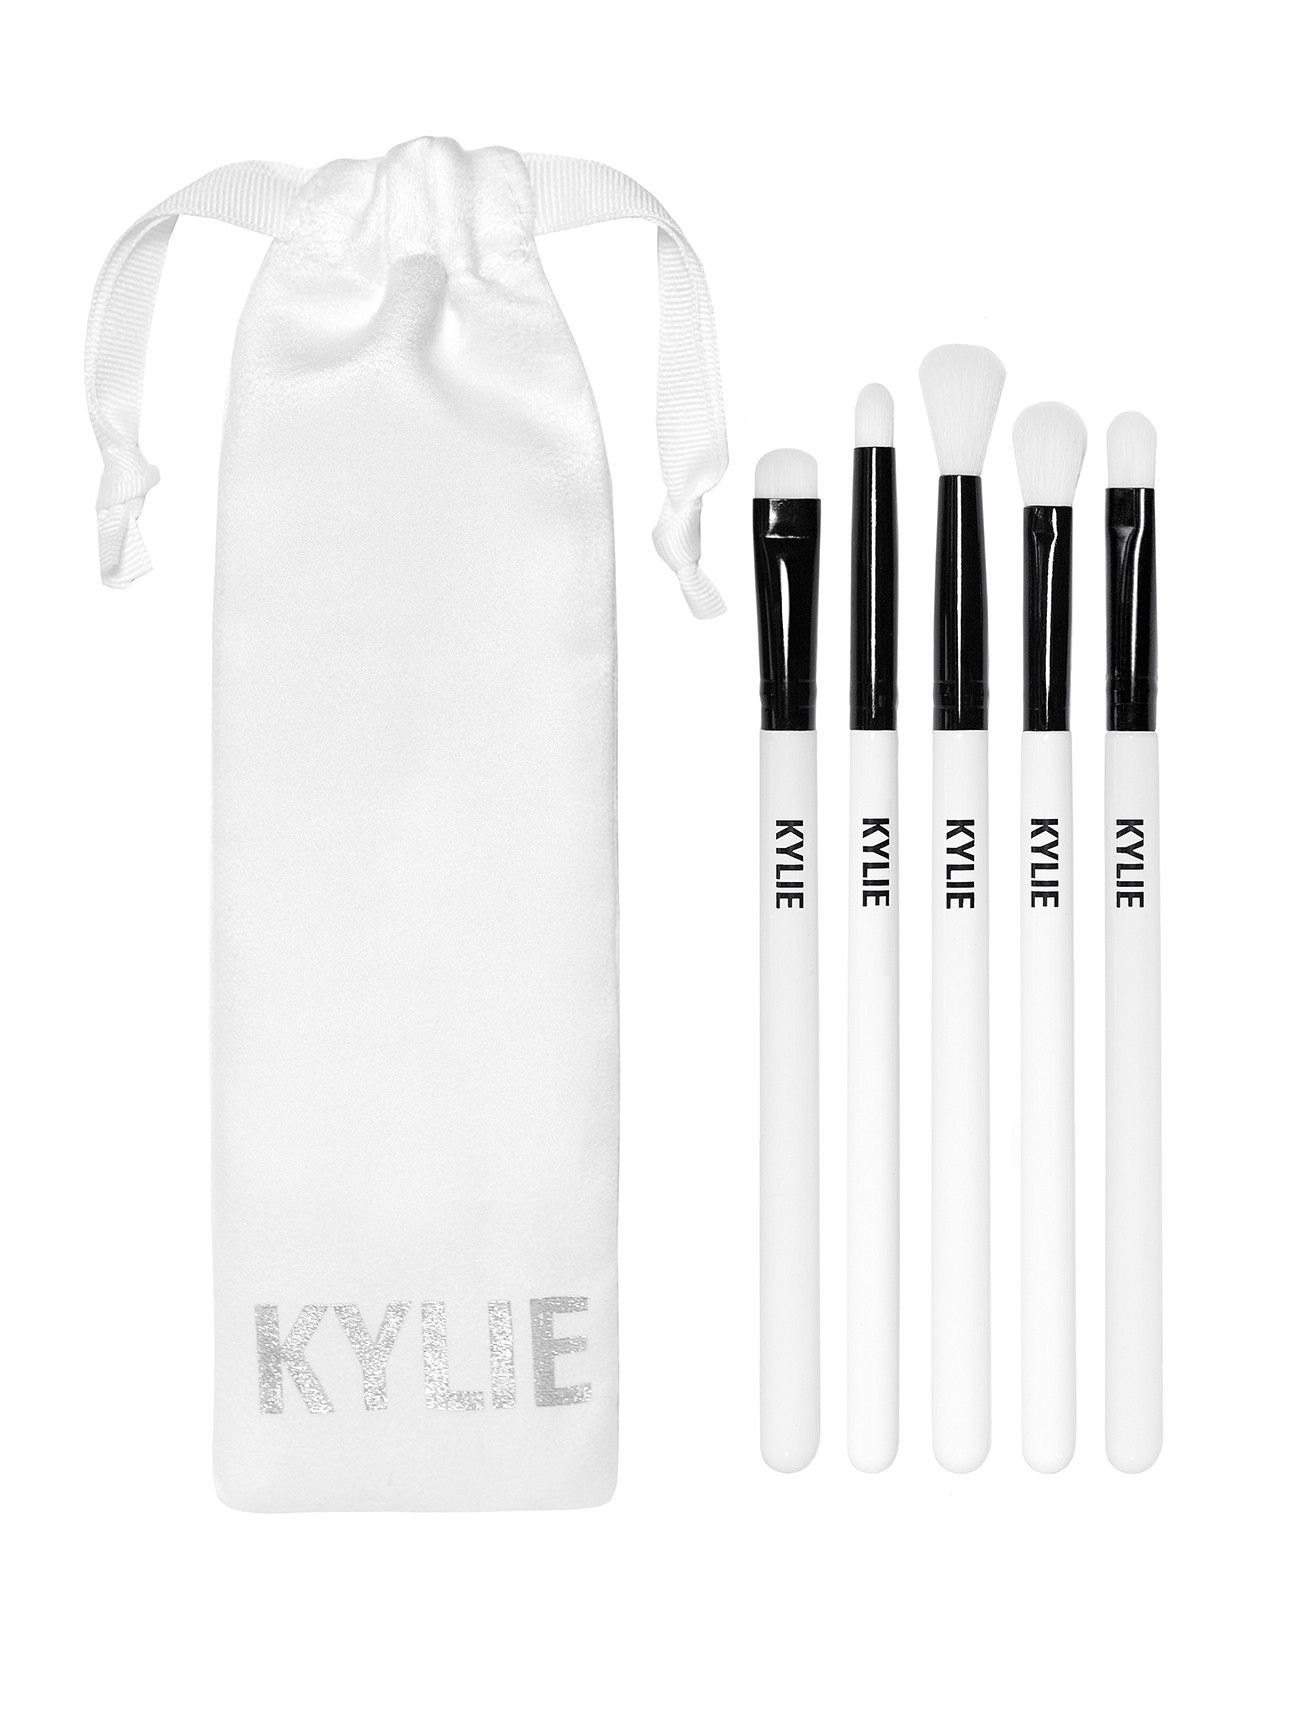 Kylie Jenner Releases Makeup Brushes in Her Kylie Cosmetics HolidayCollection recommend